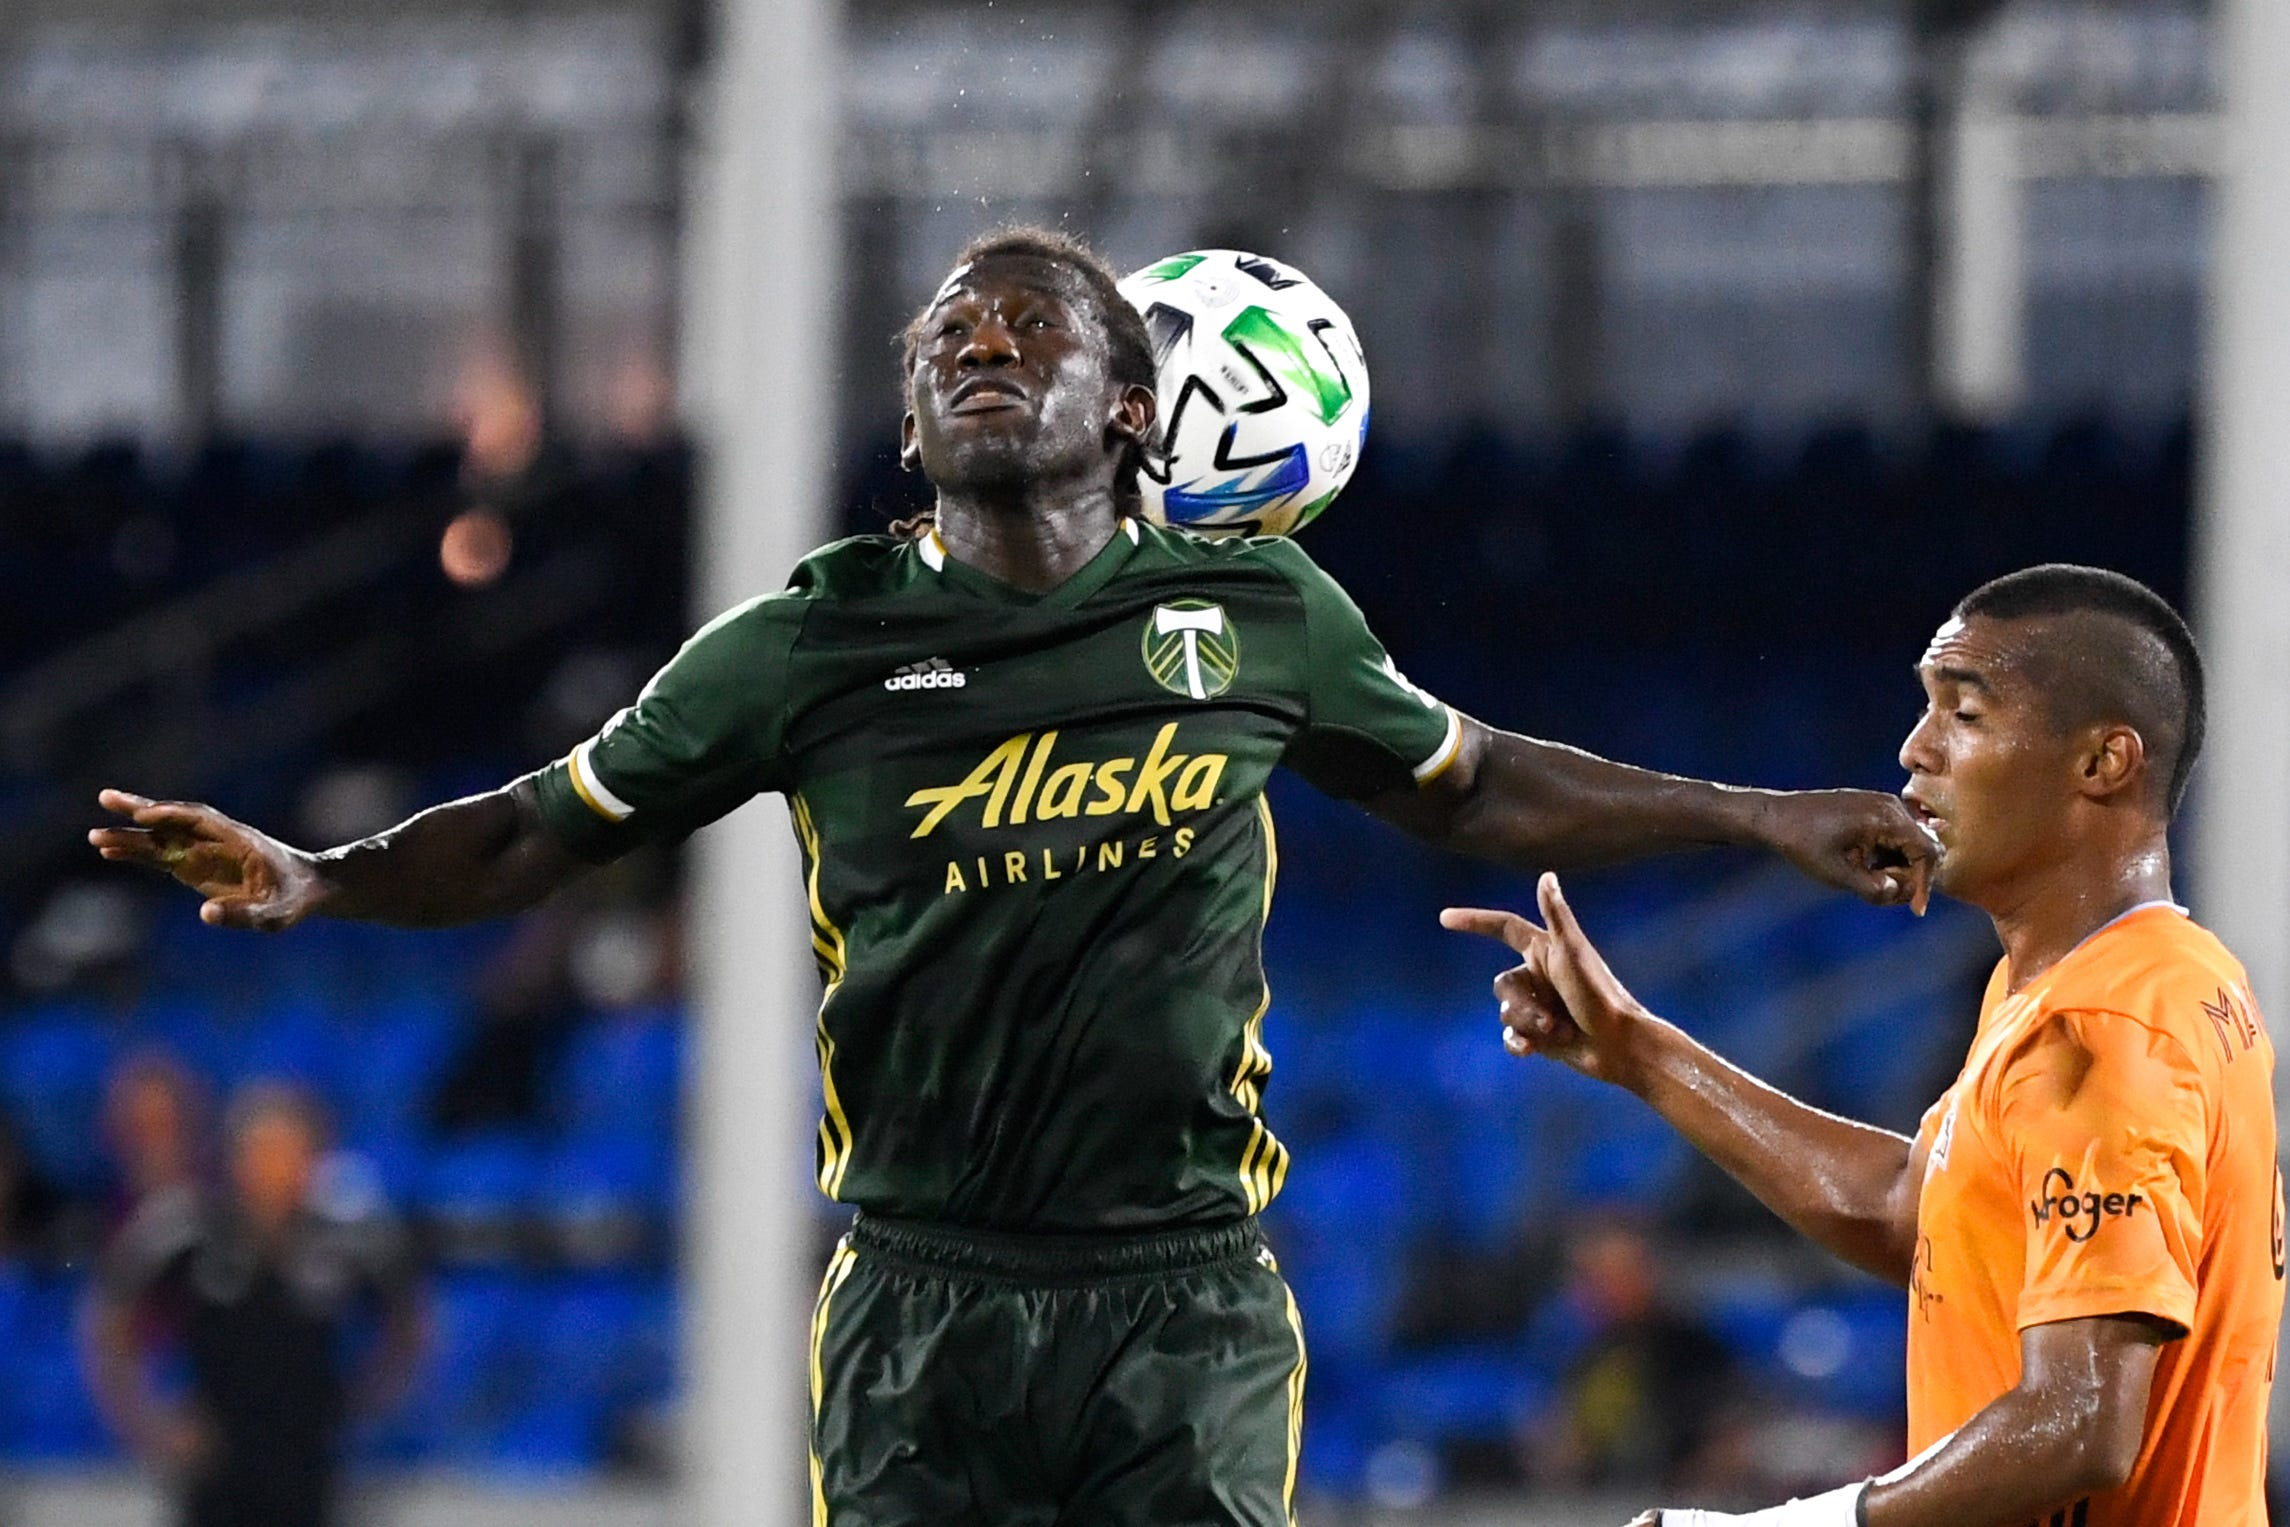 Portland Timbers allege racist taunt during match with Minnesota United, rips officials response